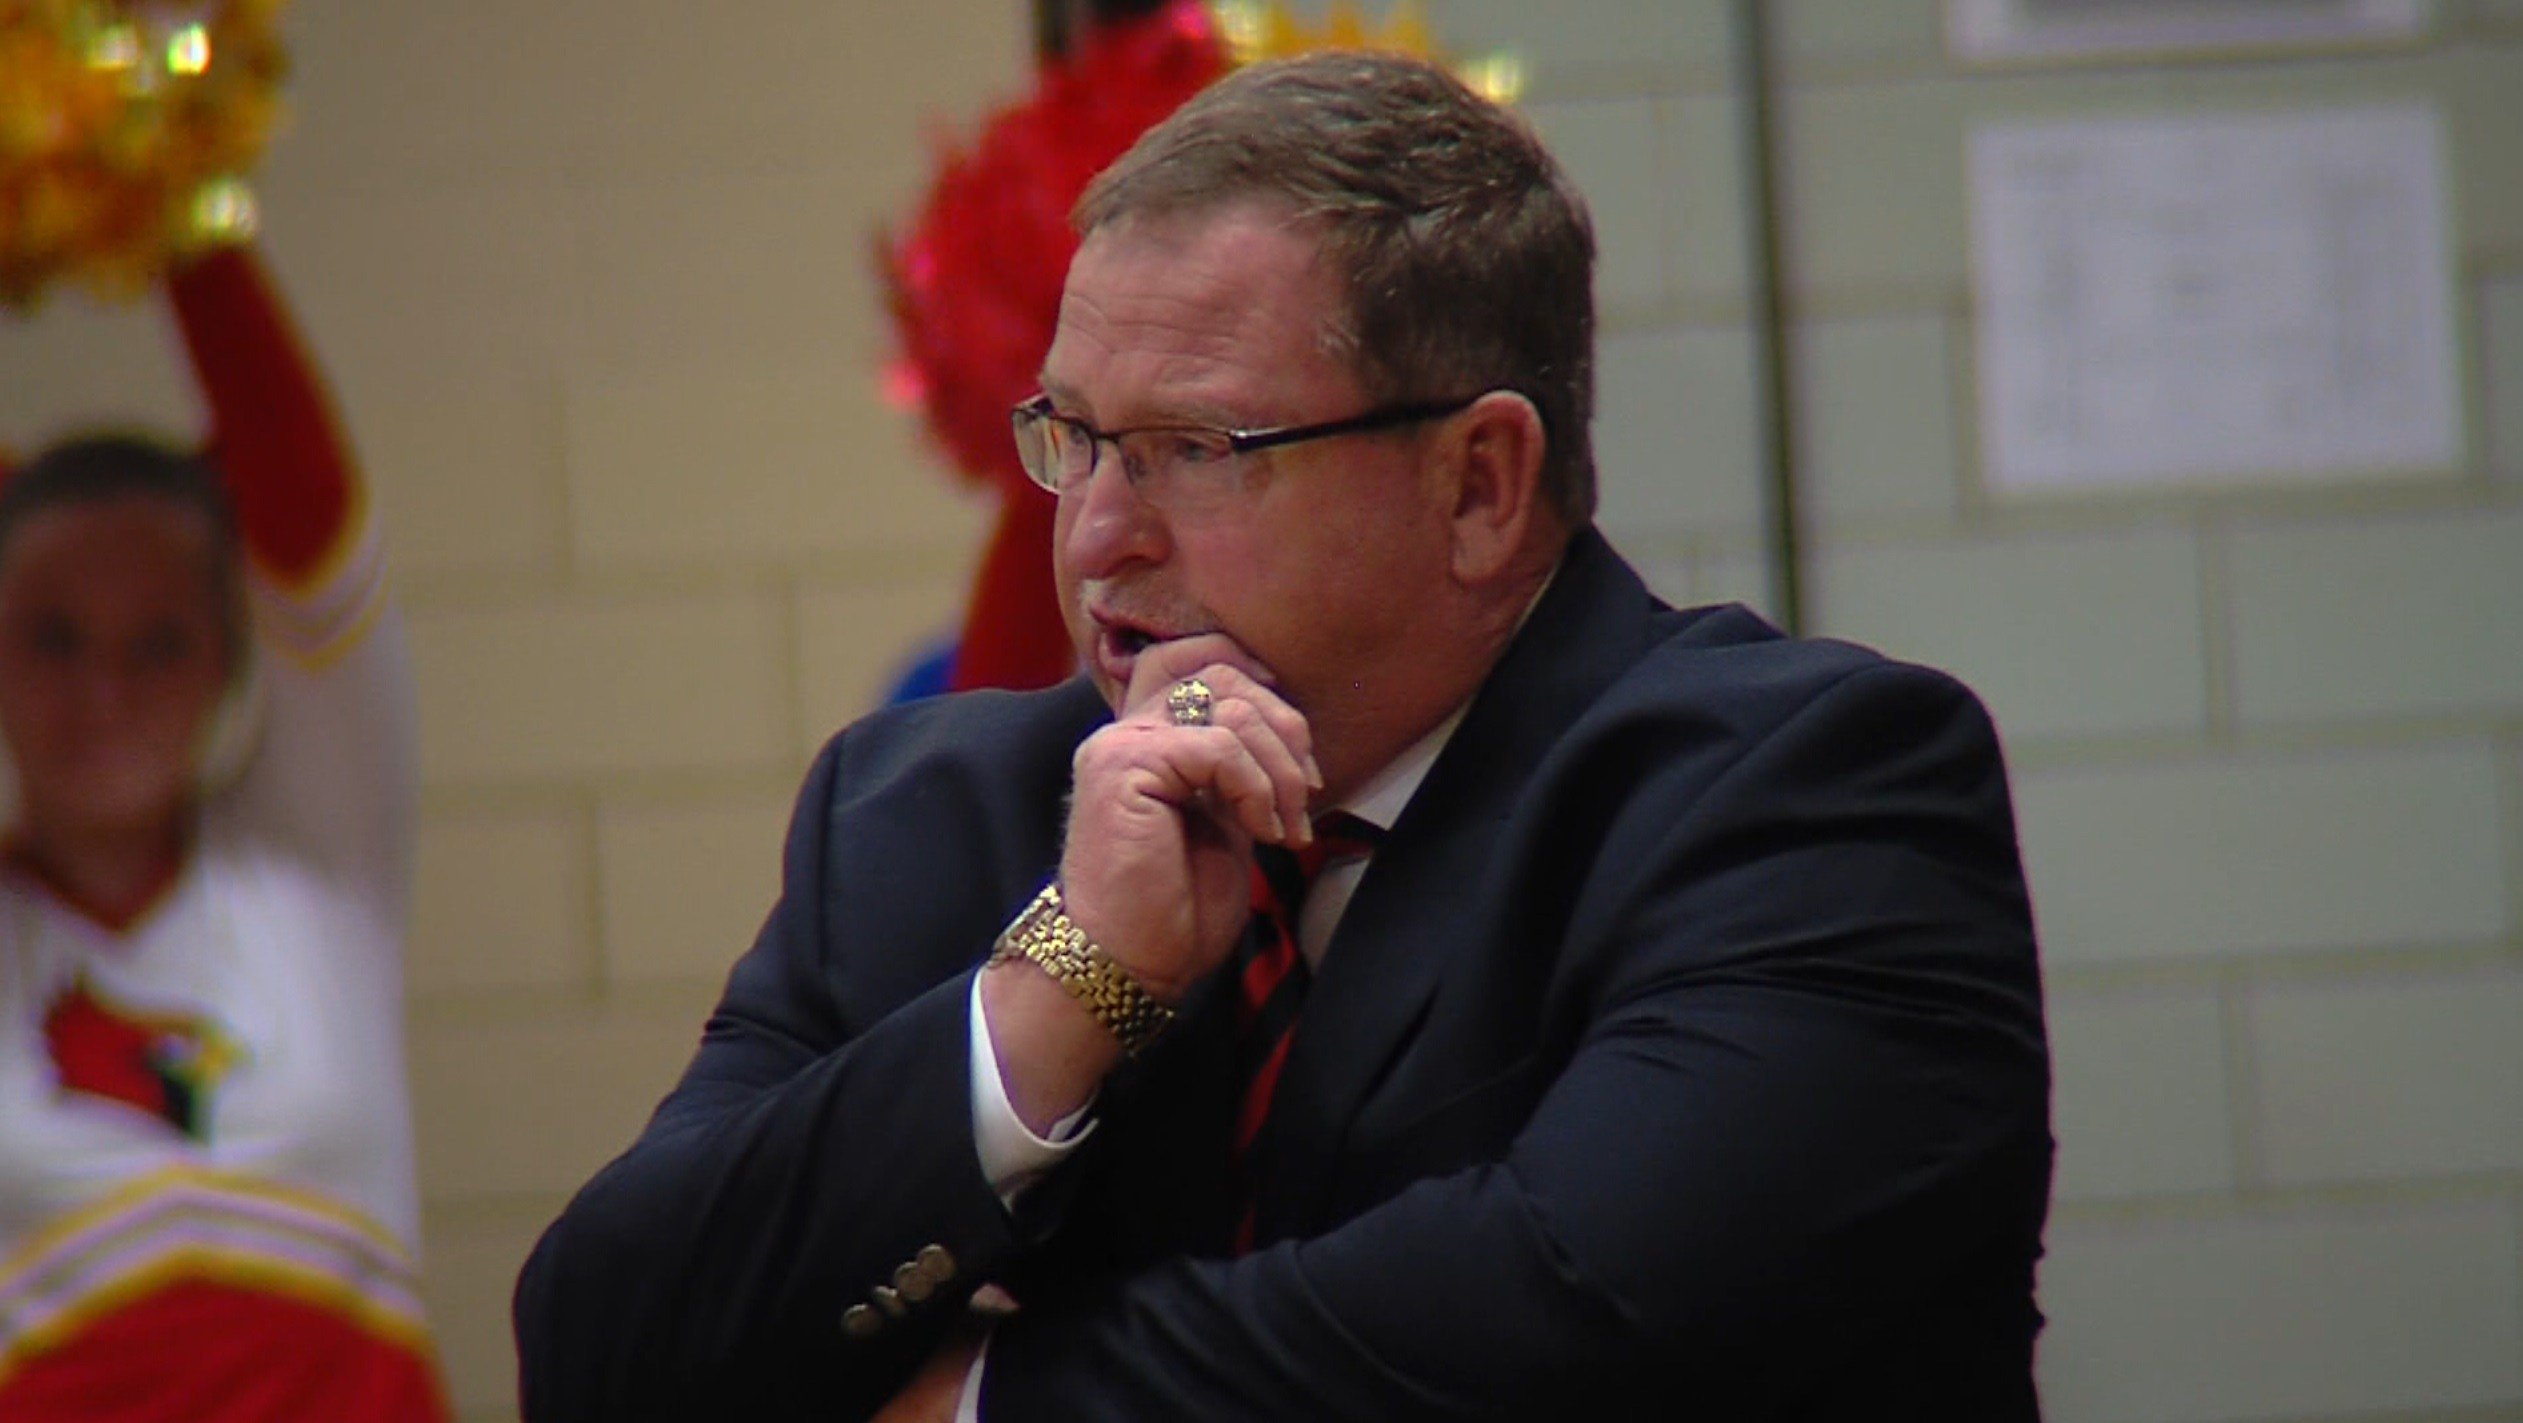 Warrensburg-Latham head coach Vic Binkley and the No. 3 seed Cardinals will play No. 2 seed Central A&M in the Macon County Tournament semifinals on Thursday at 7 p.m. in Cerro Gordo.